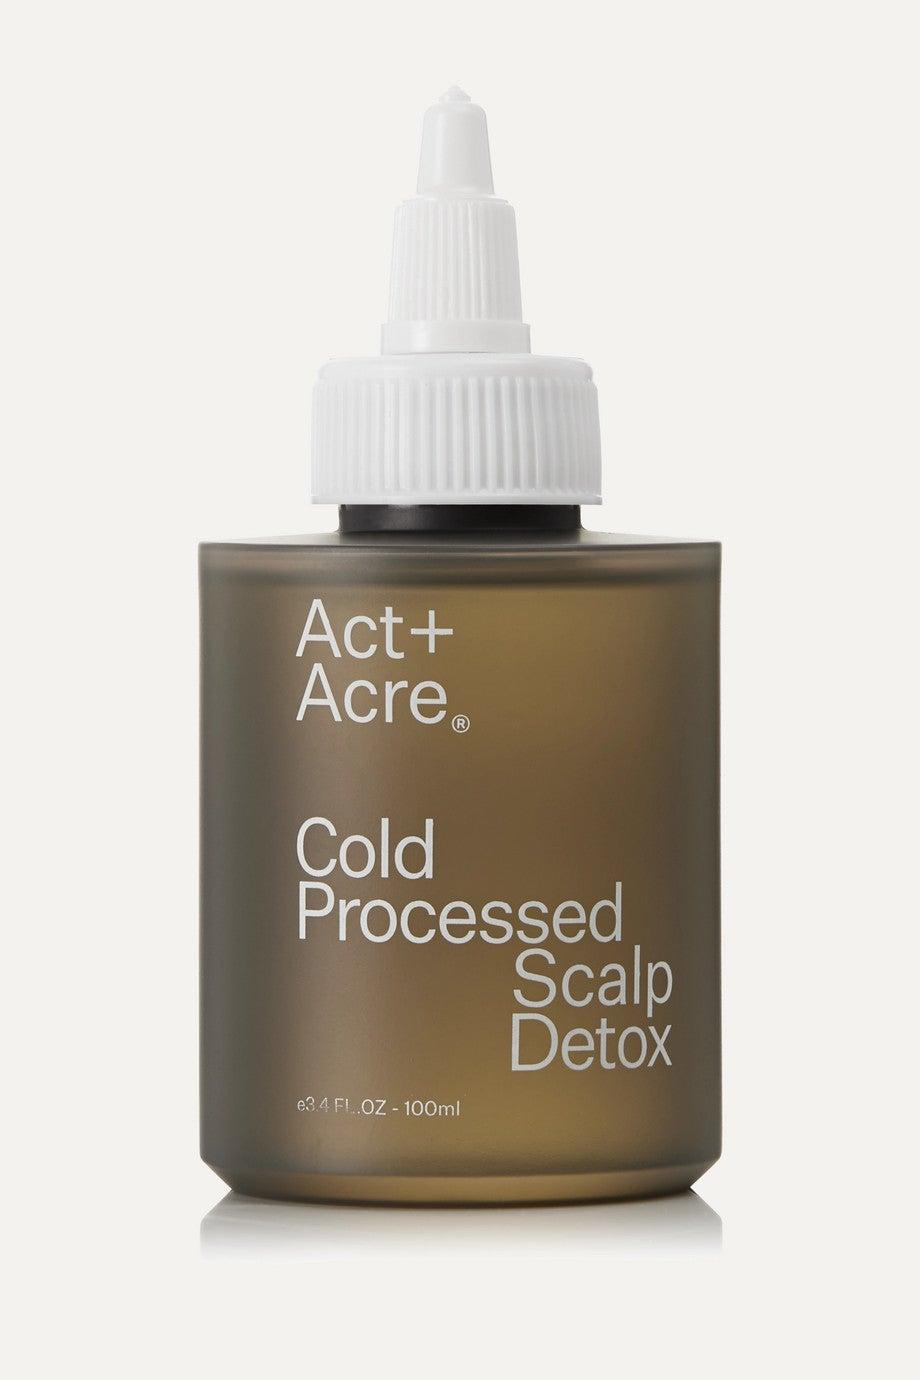 """<h3><a href=""""https://www.net-a-porter.com/us/en/product/1219060"""" rel=""""nofollow noopener"""" target=""""_blank"""" data-ylk=""""slk:Act+Acre Cold Processed Scalp Detox"""" class=""""link rapid-noclick-resp"""">Act+Acre Cold Processed Scalp Detox</a></h3><br>Hip packaging? Check. A+ ingredients? Check. This plant-based scalp treatment is powered by botanical ingredients like moringa, basil leaf, amaranth, and baobab to nourish roots and gently rid the scalp of impurities.<br><br><strong>Act+Acre</strong> Cold Processed Scalp Detox, $, available at <a href=""""https://go.skimresources.com/?id=30283X879131&url=https%3A%2F%2Fwww.net-a-porter.com%2Fus%2Fen%2Fproduct%2F1219060"""" rel=""""nofollow noopener"""" target=""""_blank"""" data-ylk=""""slk:Net-A-Porter"""" class=""""link rapid-noclick-resp"""">Net-A-Porter</a>"""